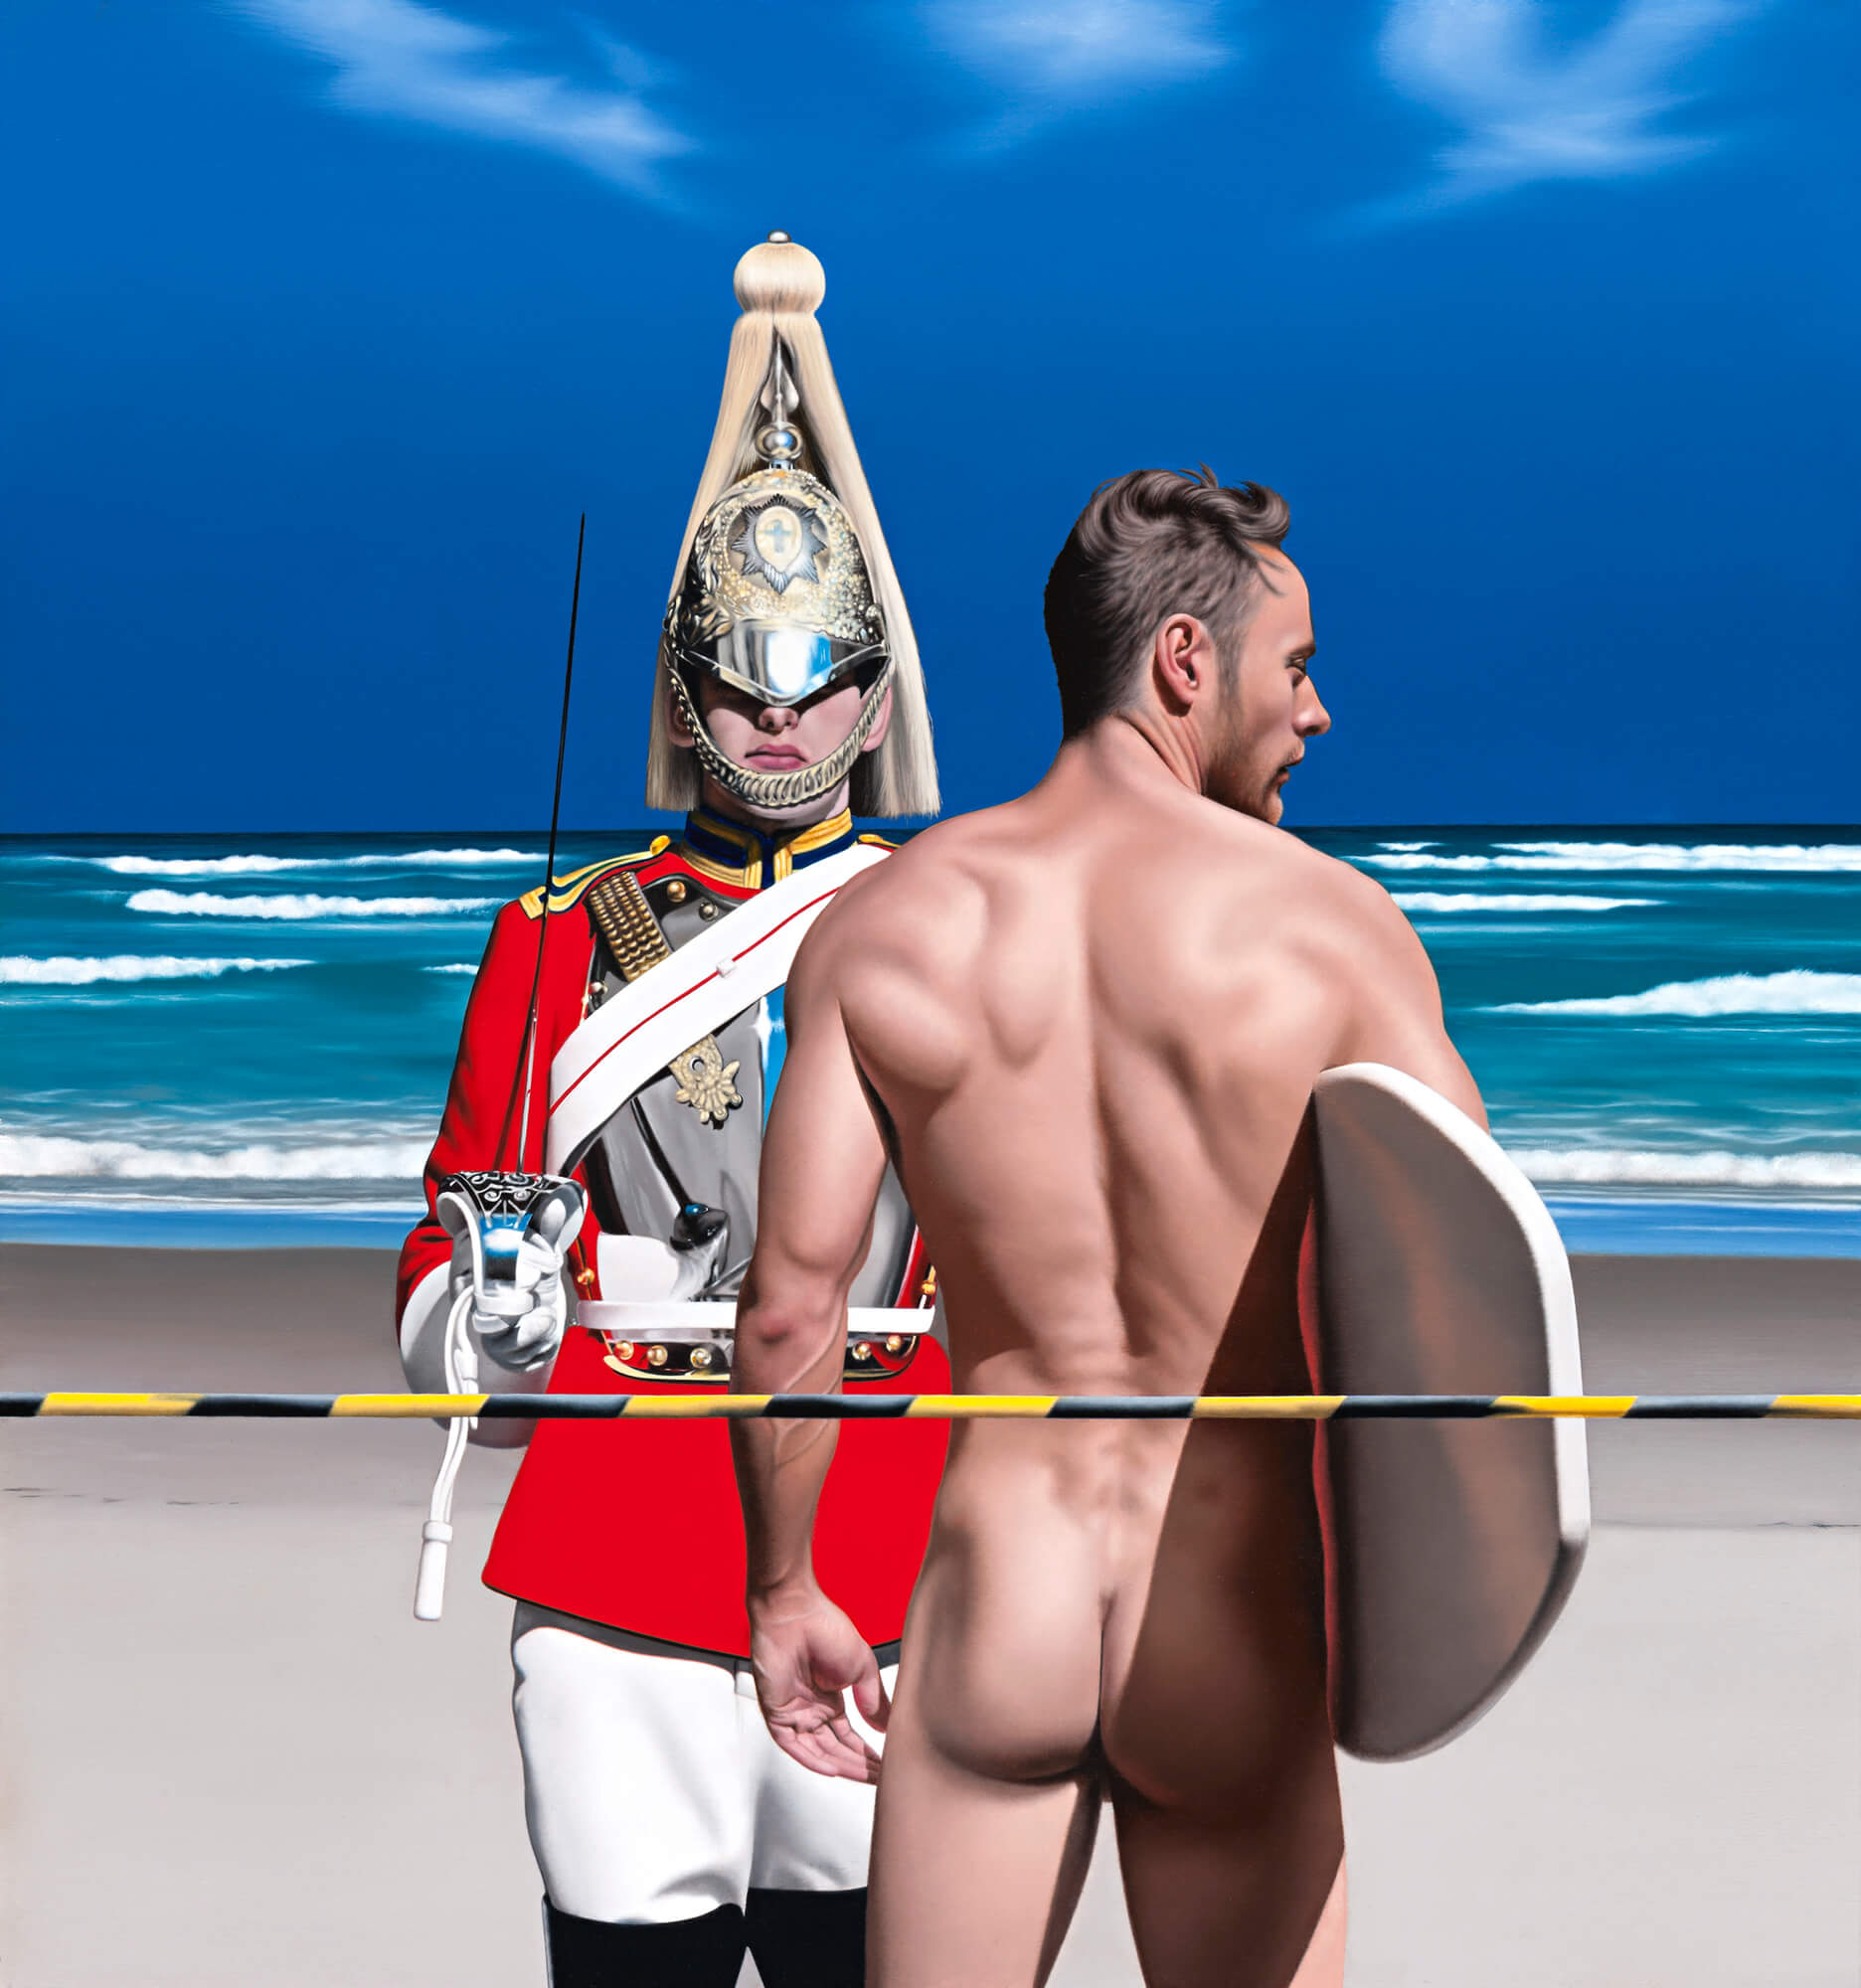 Two Life Guards